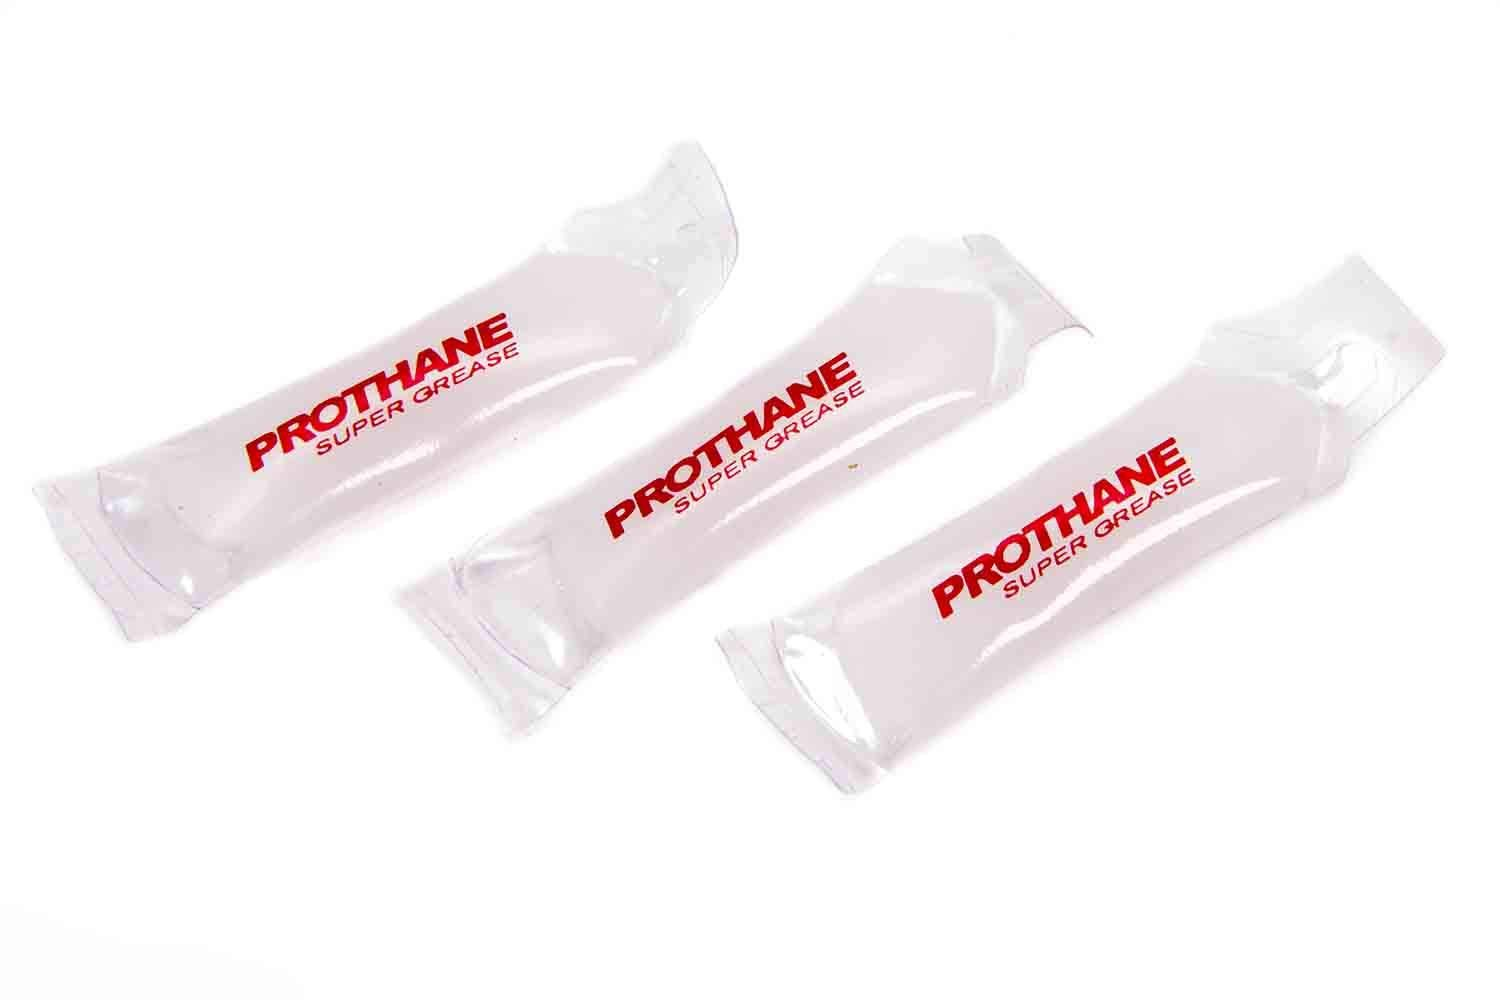 Prothane Grease, Super, Silicone/PTFE, 1/2 oz Packet, Polyurethane/Rubber Bushings, Set of 3, red (19-1750)